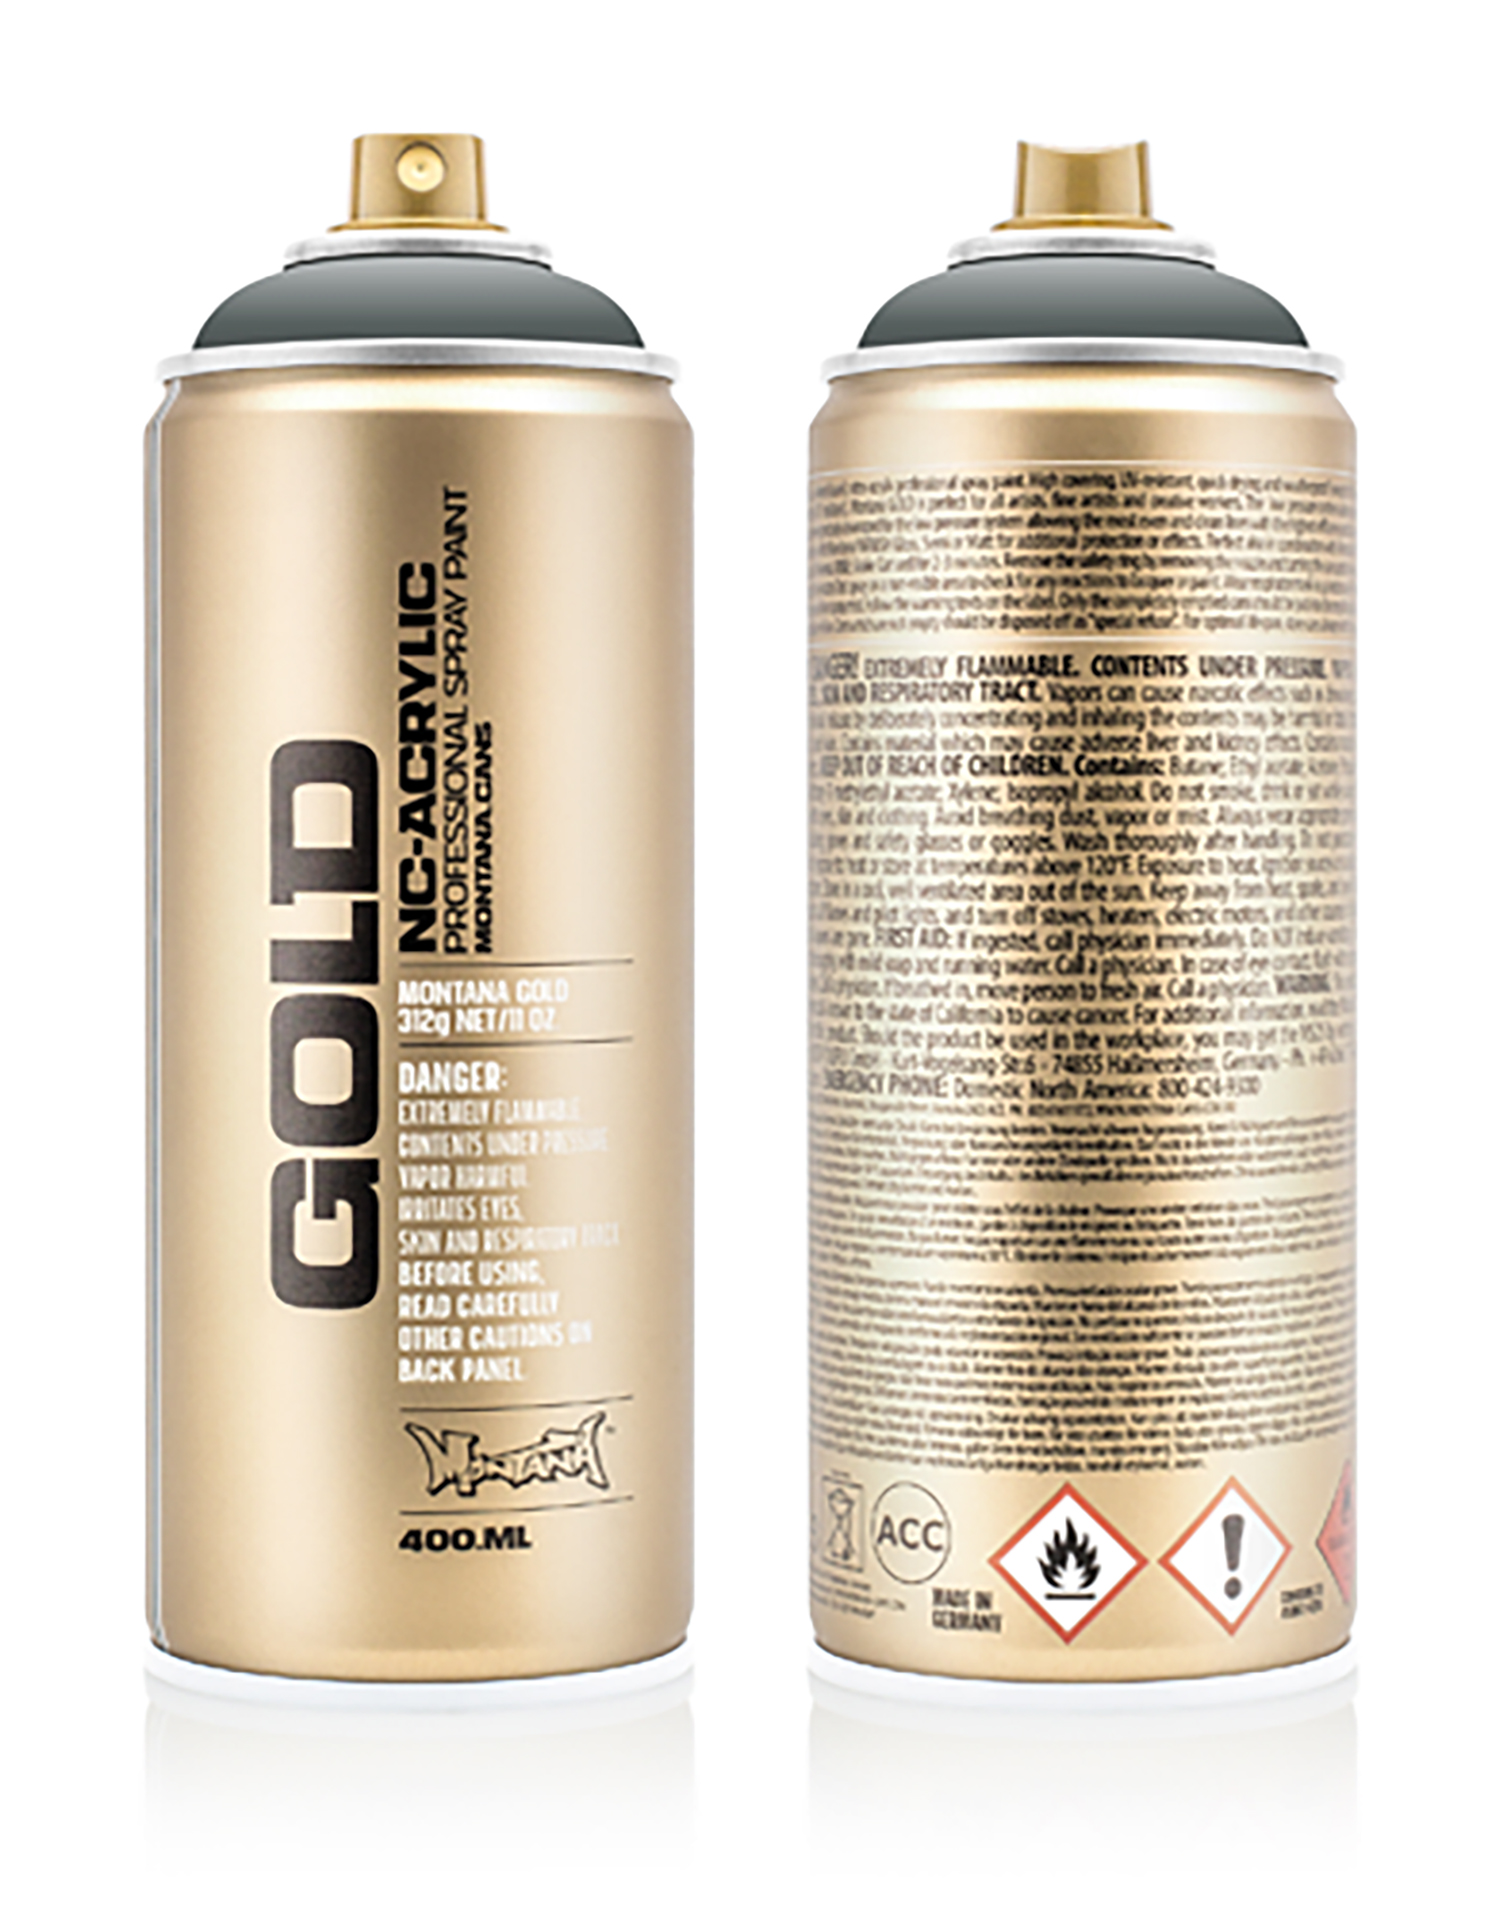 MONTANA-GOLD-SPRAY-400ML-G-7060